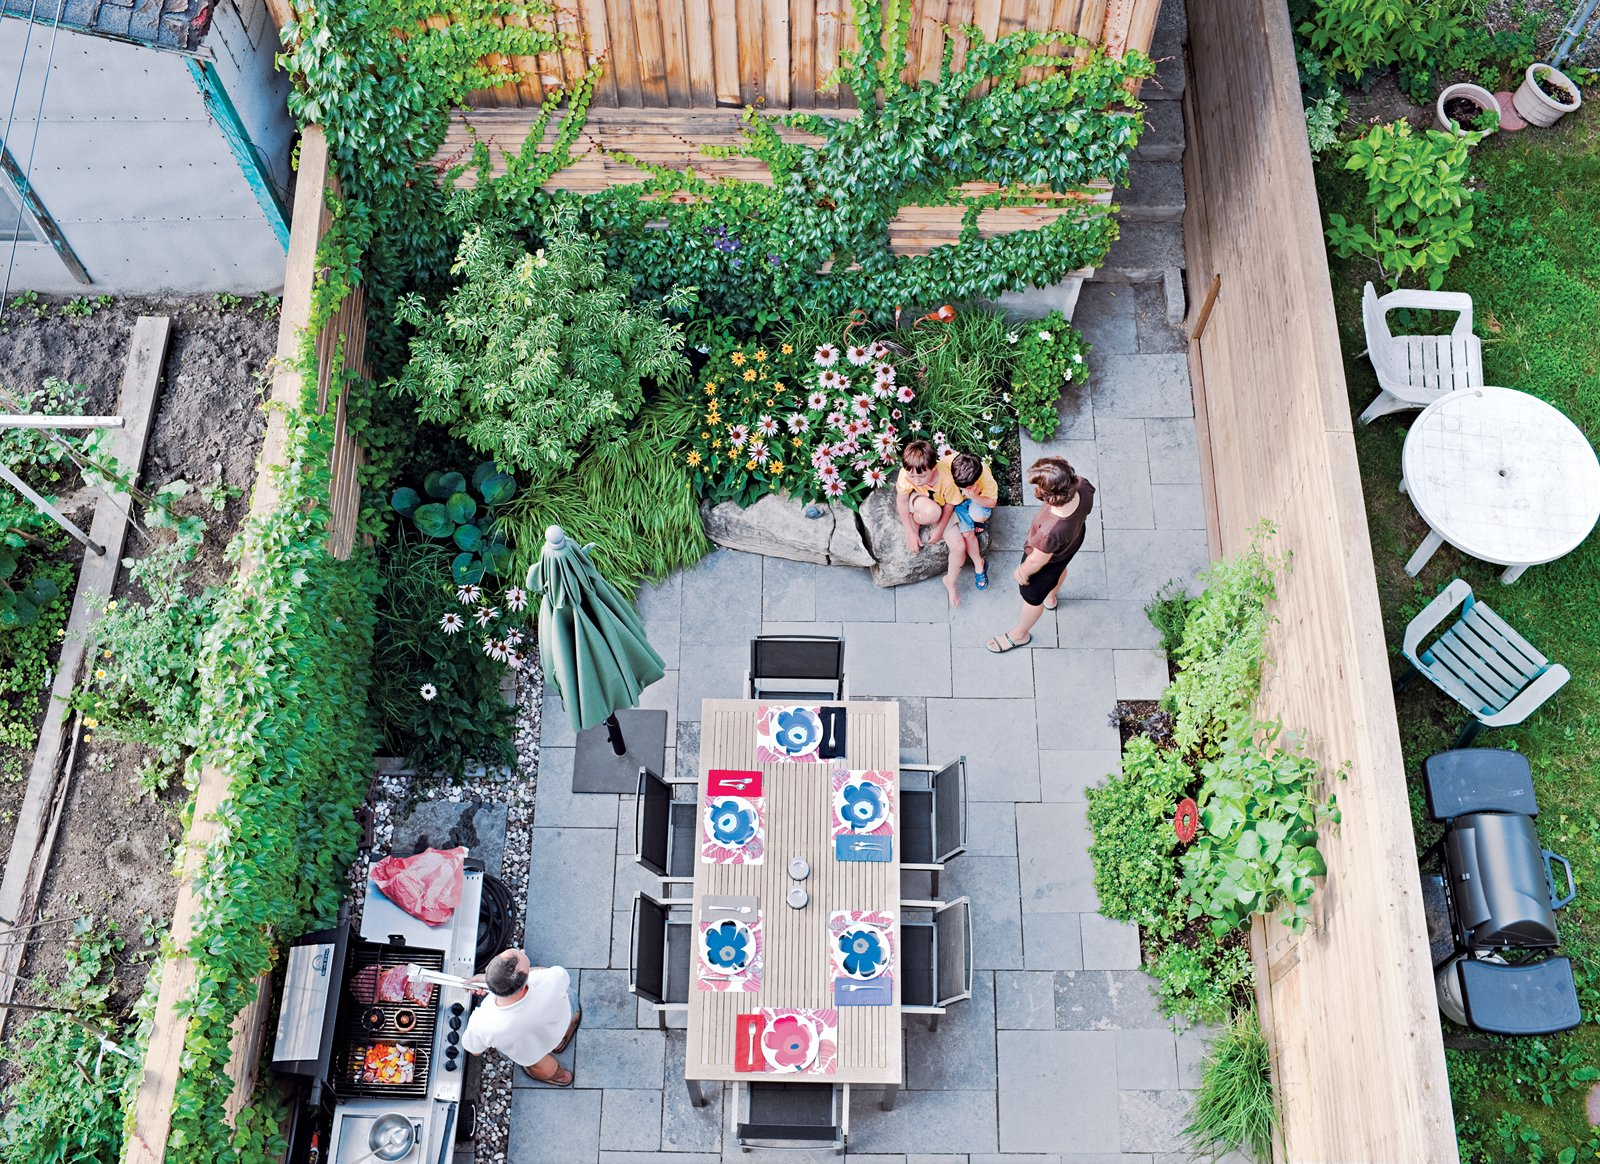 Outdoor, Back Yard, Gardens, Walkways, Stone Patio, Porch, Deck, Horizontal Fences, Wall, and Wood Fences, Wall Chong left enough space in the 16-foot-wide backyard for a garden and comfortable dining area.  Best Photos from Narrow Modernist Three-Story Home in Toronto